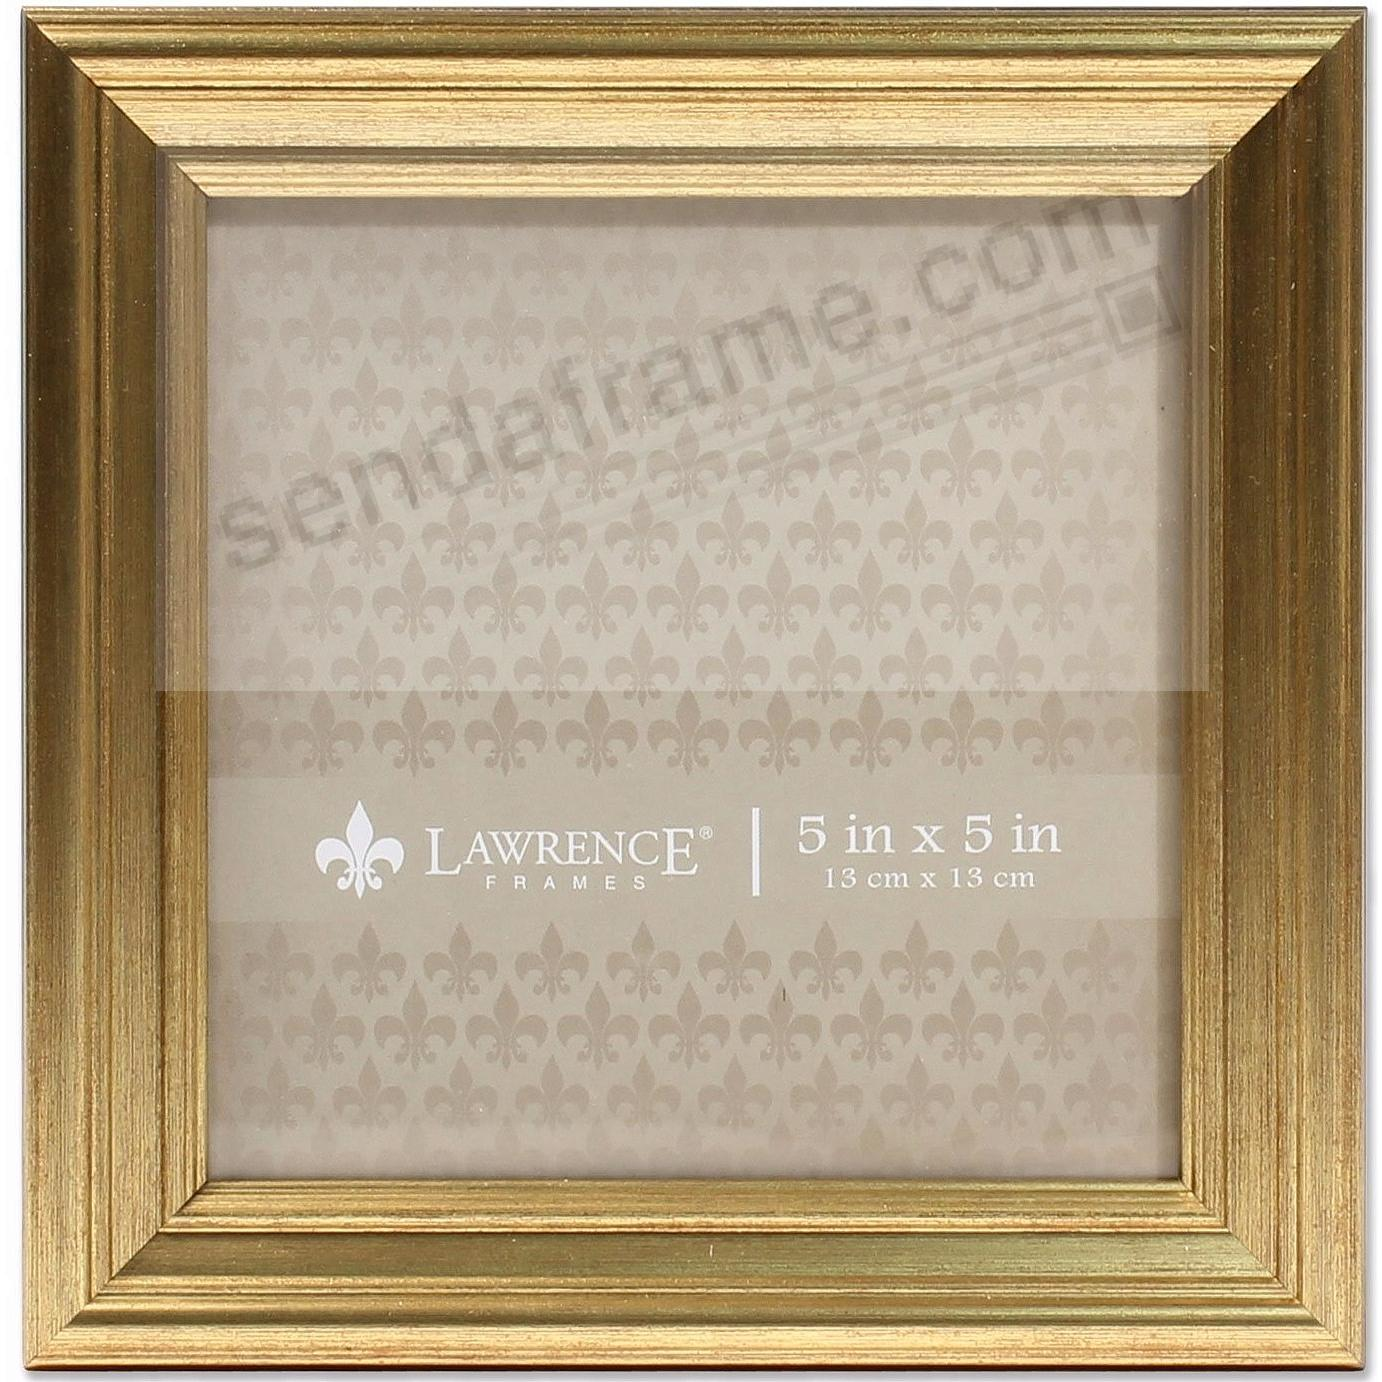 SUTTER Burnished Gold composite-wood 5x5 frame by Lawrence®